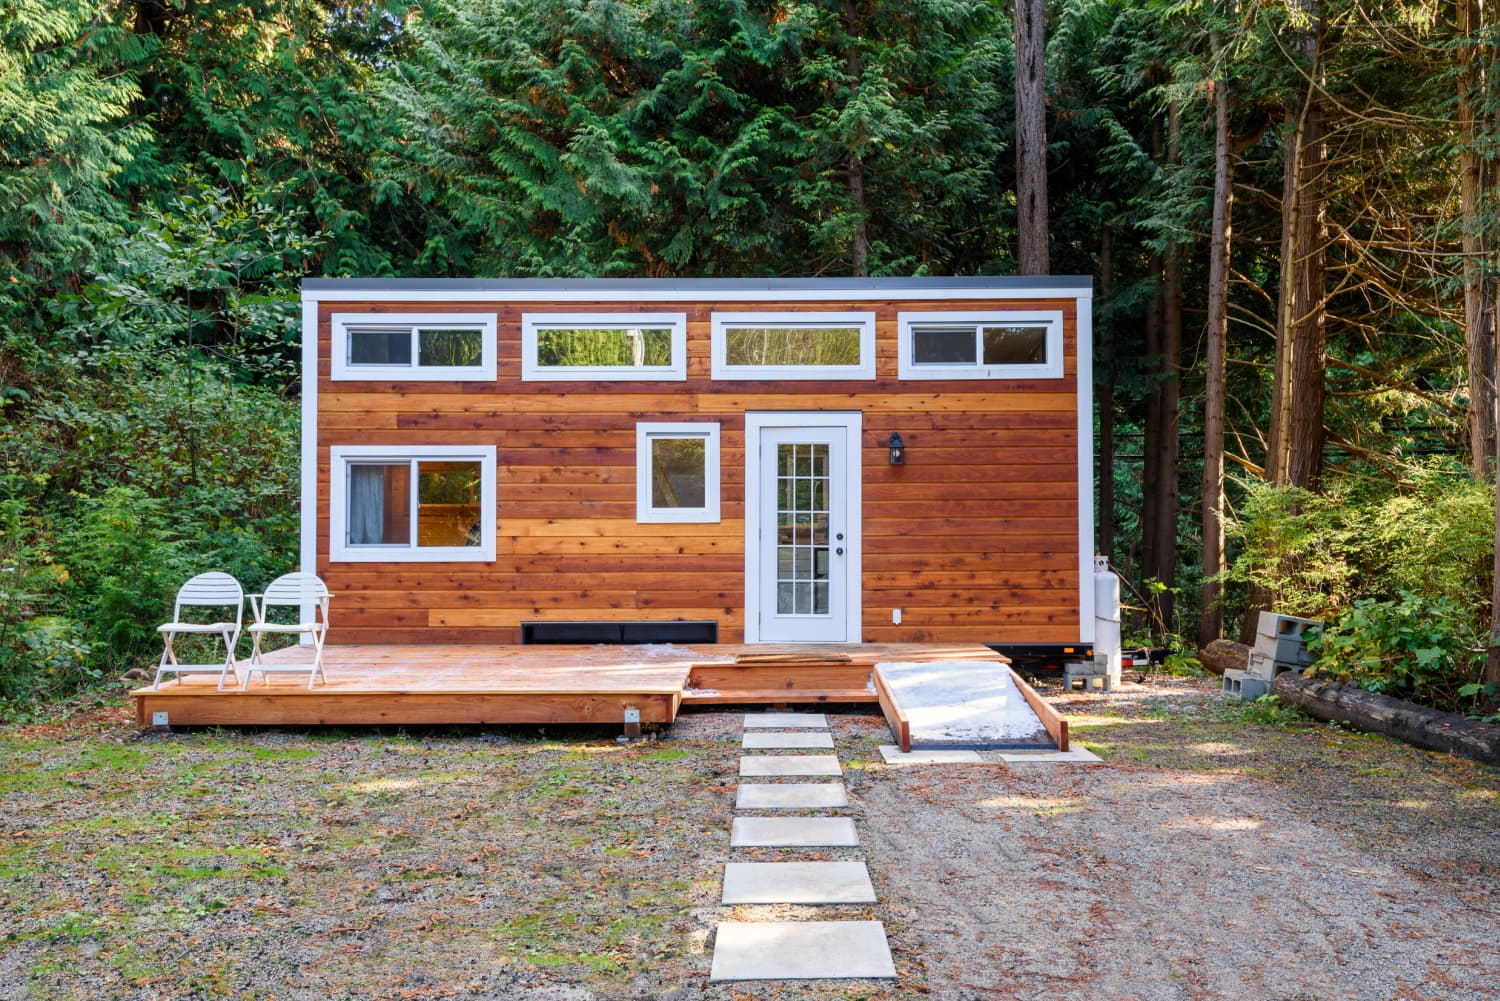 8 Tiny Houses You Can Actually Buy on Amazon